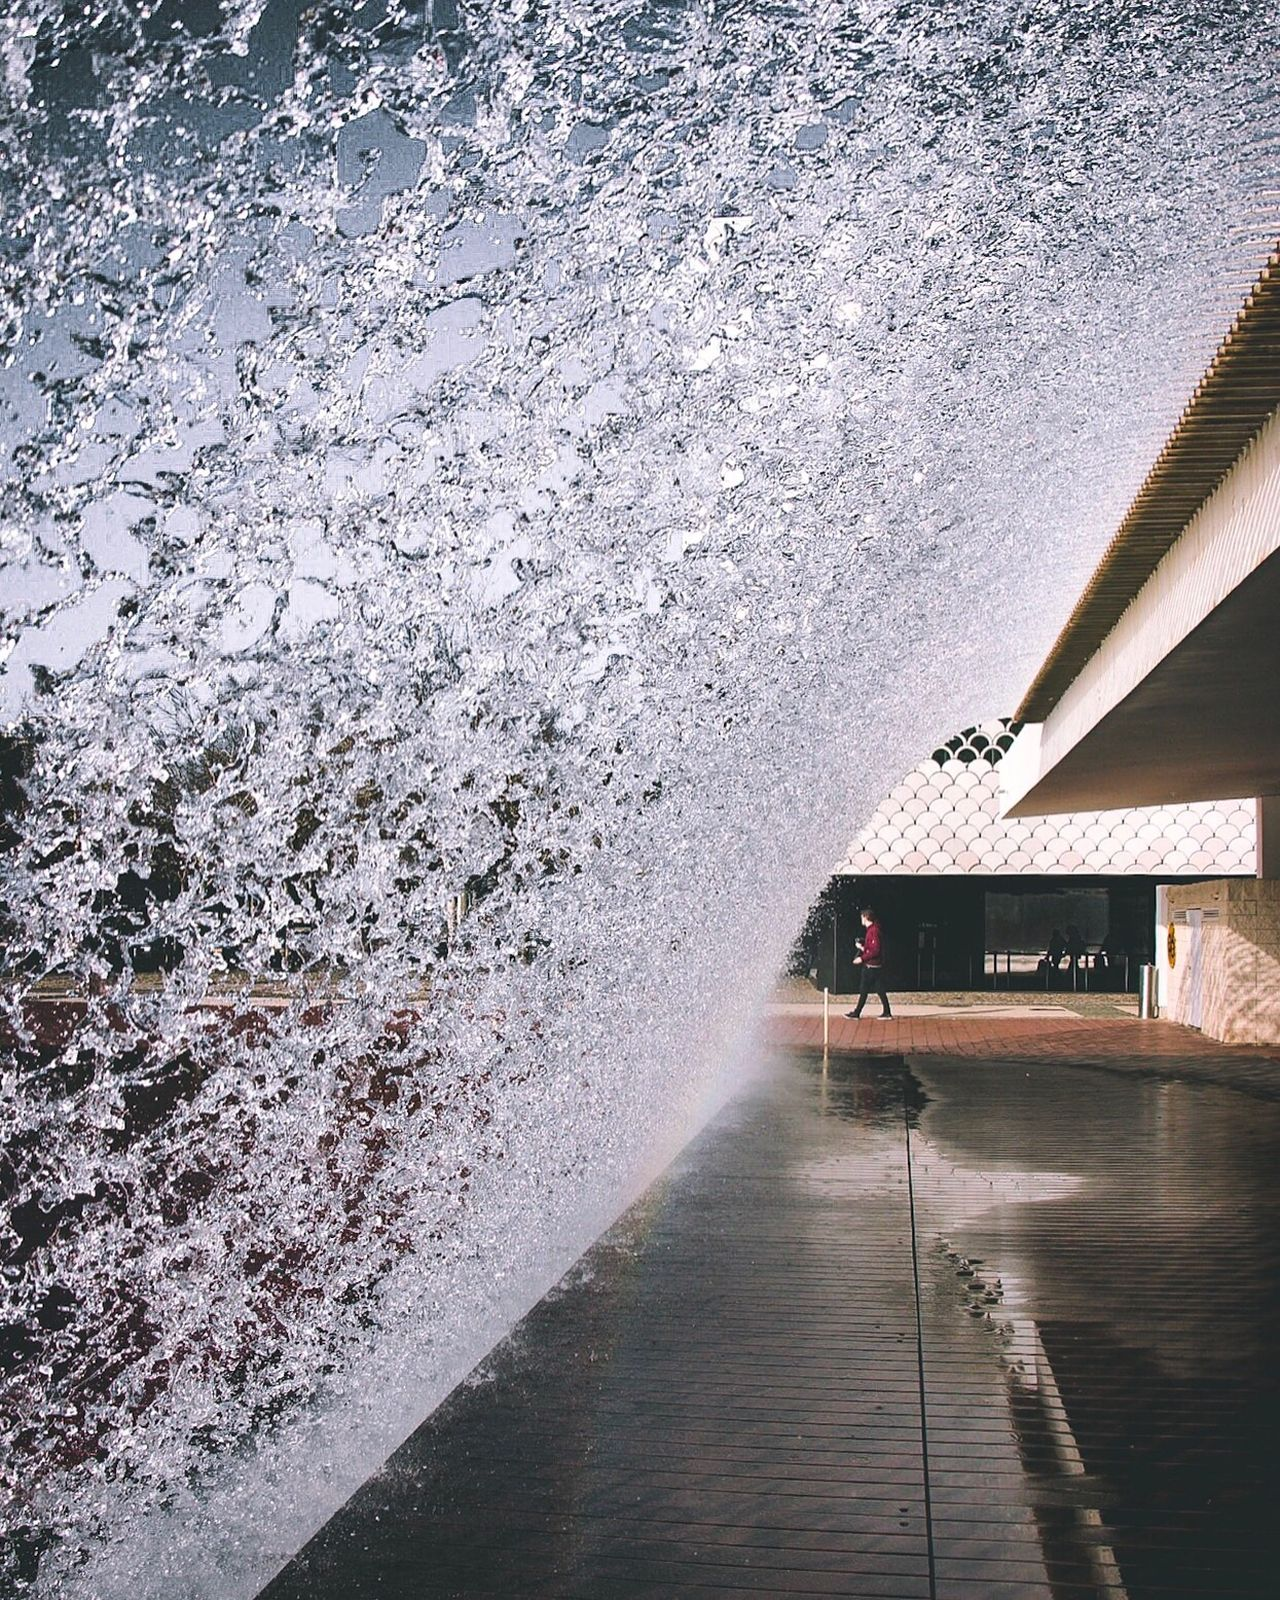 Freezing motion! Water Nature Outdoors Cold Temperature Road Built Structure Day Illuminated No People Architecture Beauty In Nature Sky EyeEm EyeEm Gallery EyeEm Best Shots Lisbon